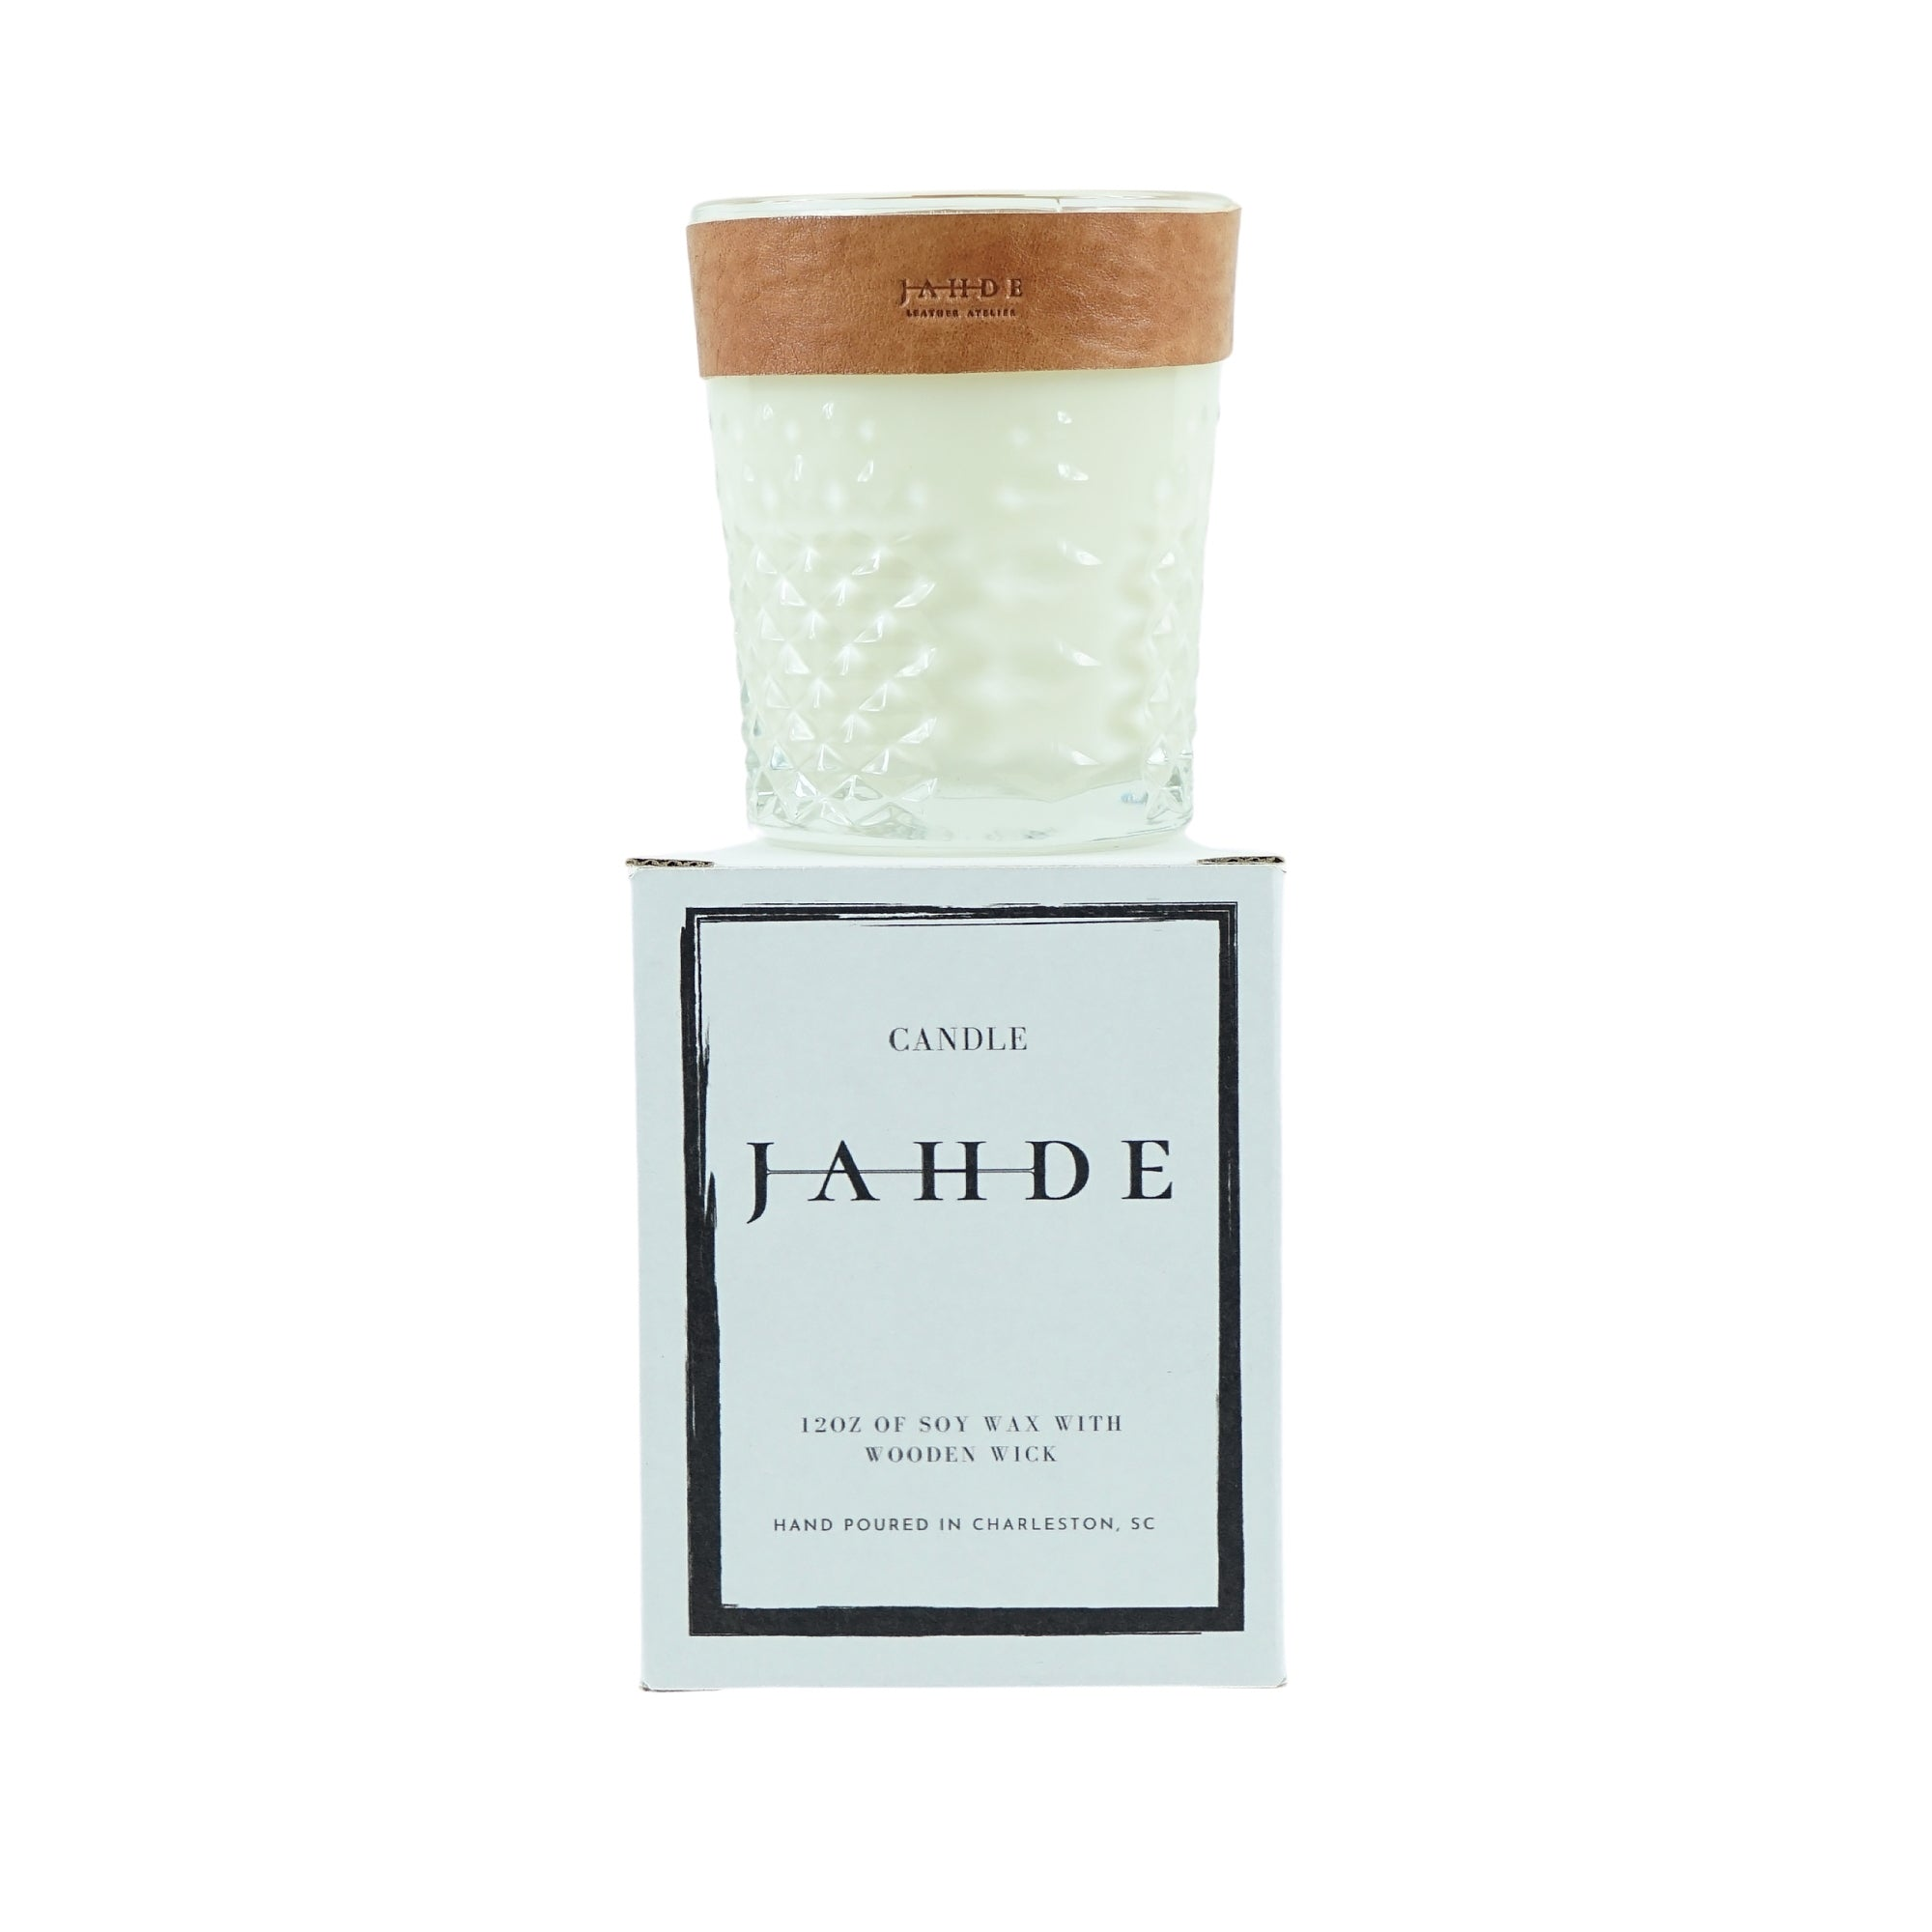 Jahde Signature Candle